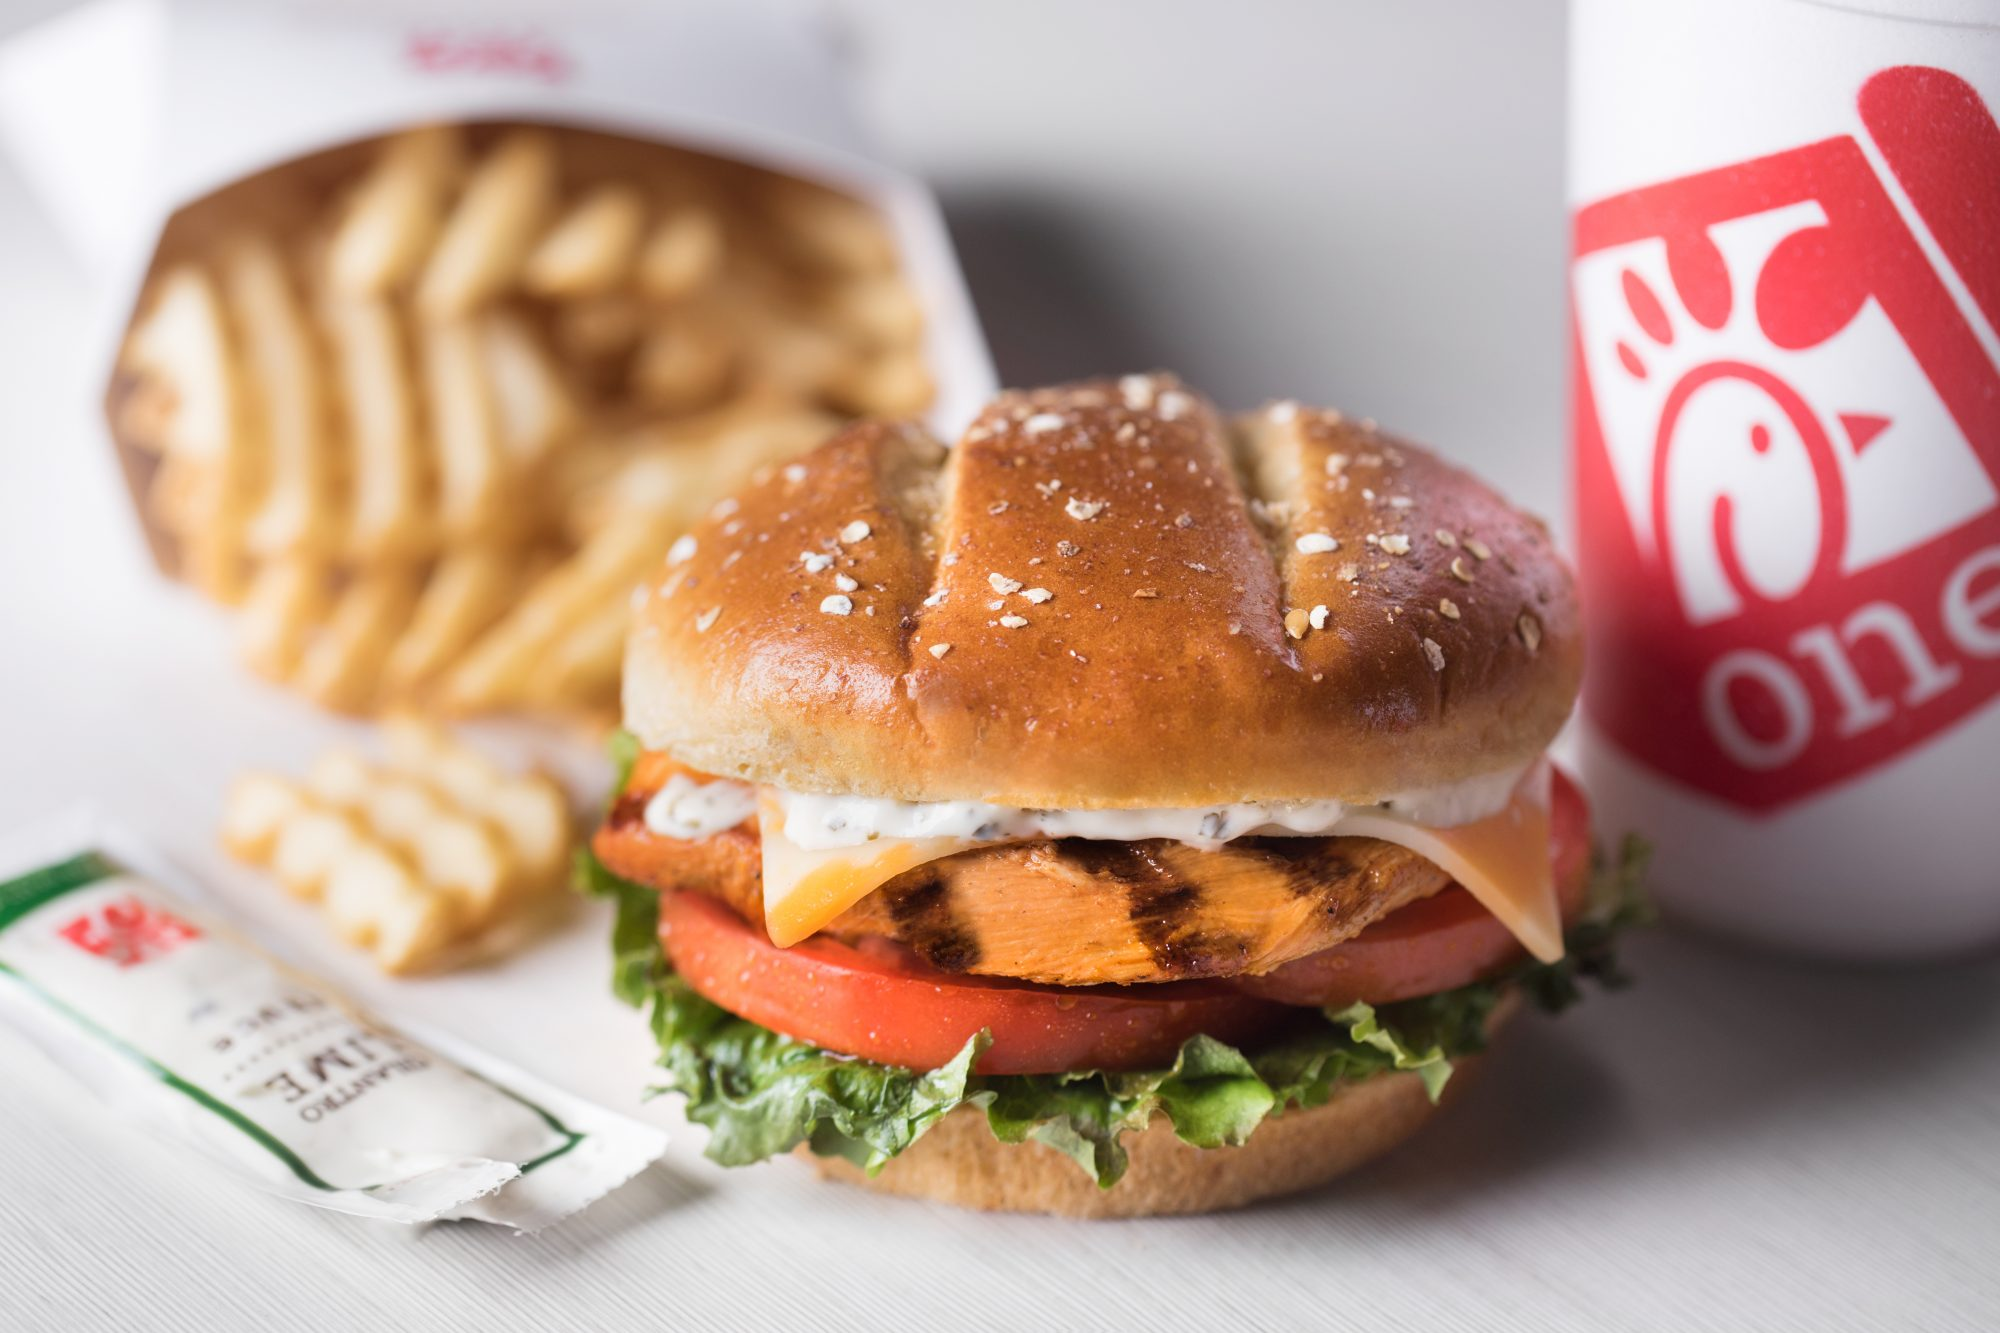 Chick-fil-a chick-fil-a deluxe sandwich